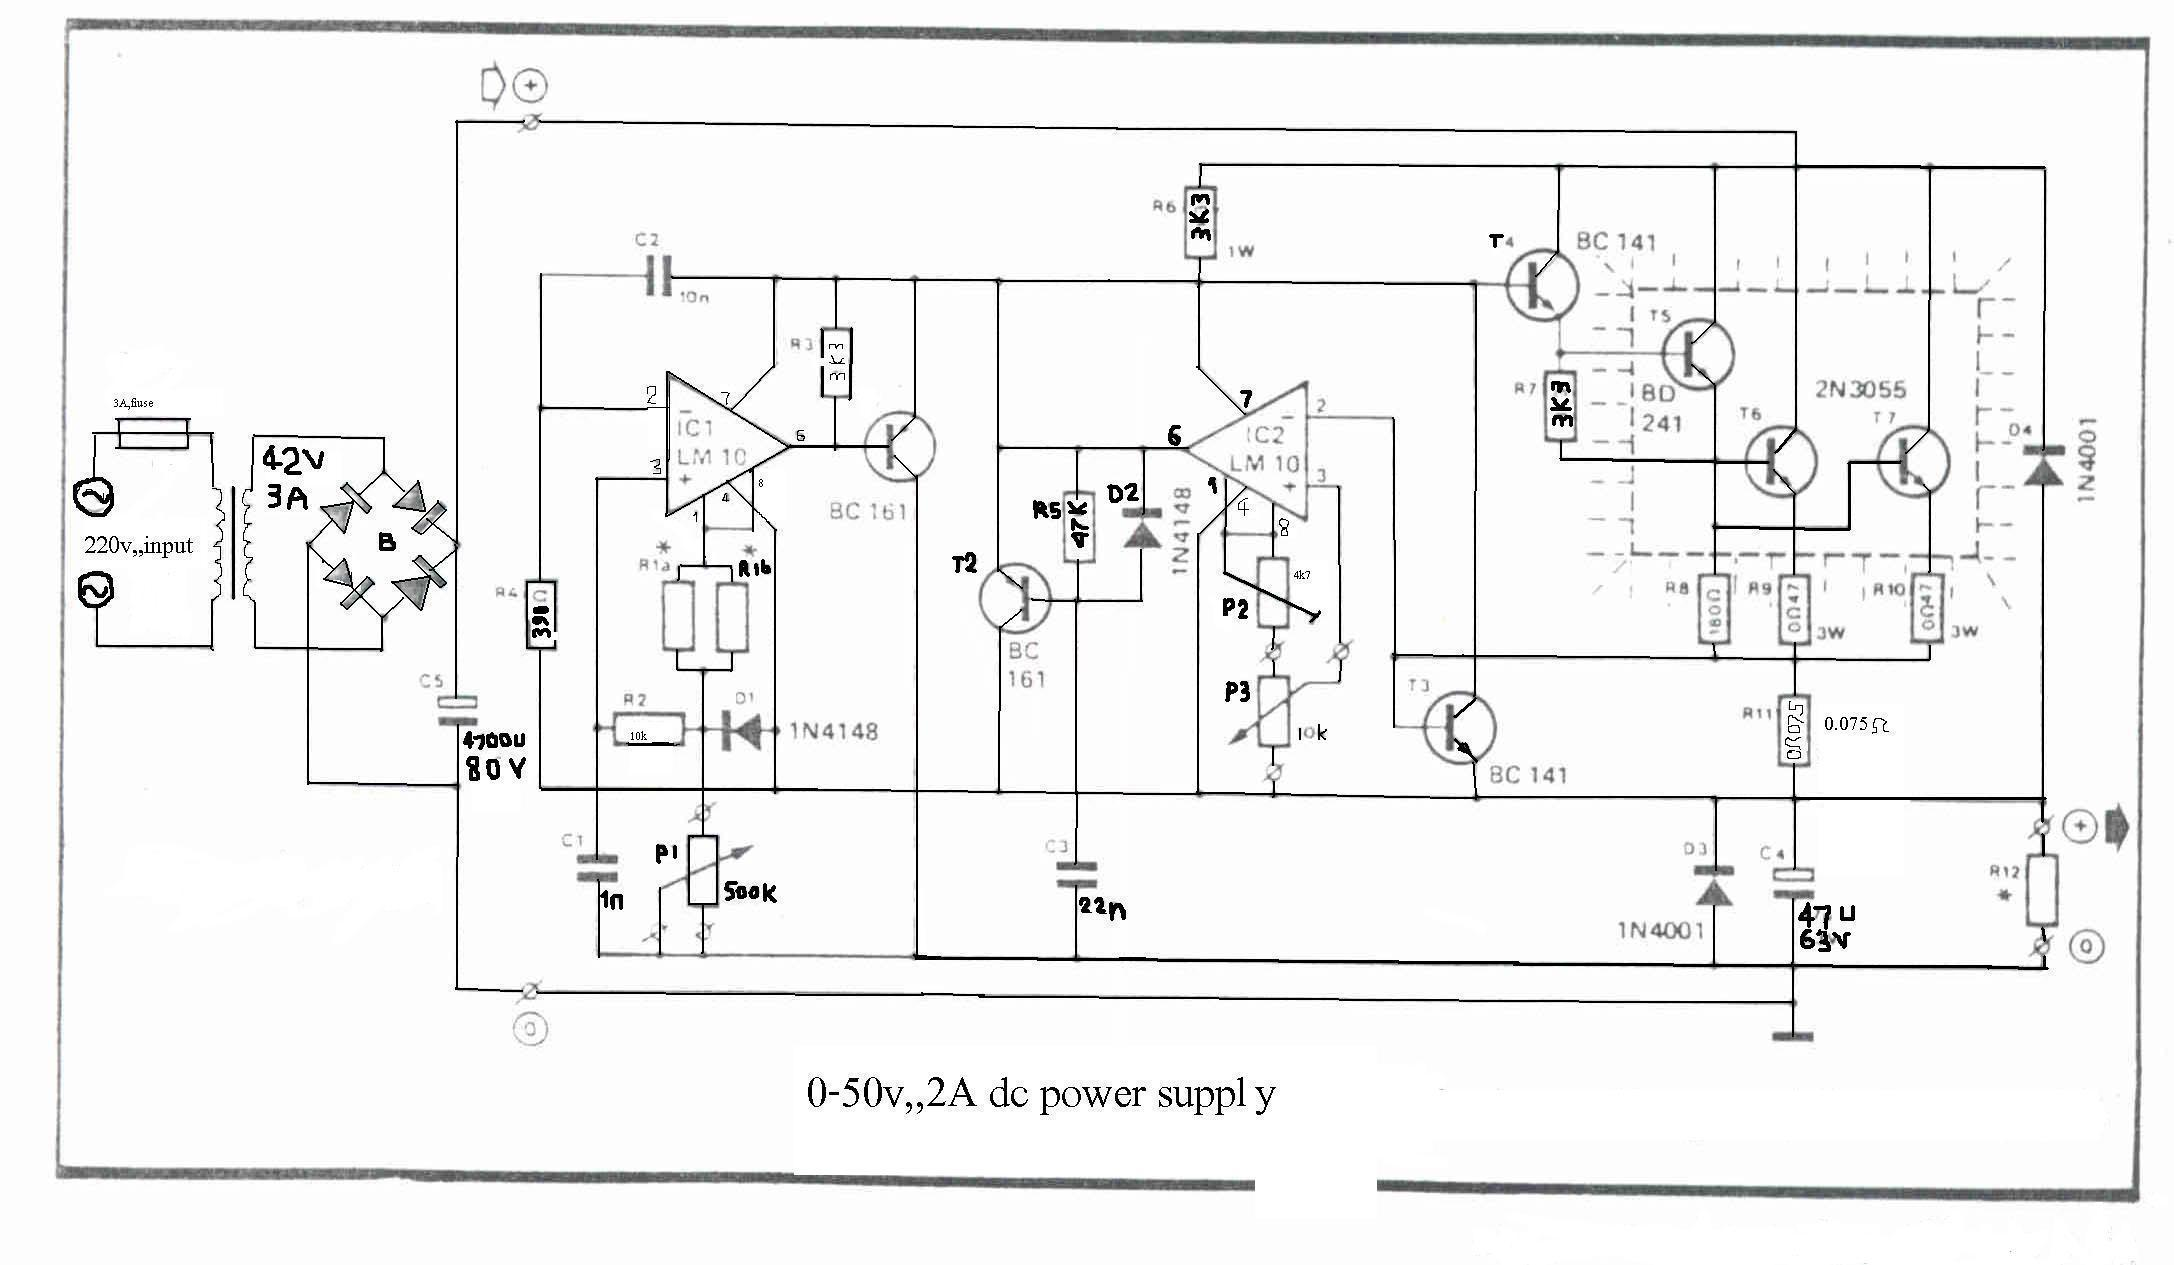 0 50v 2a bench power supply circuit diagrams schematics rh diy electronic projects com 110V 3-Way Switch Wiring Smoke Detector Interconnect Wiring-Diagram